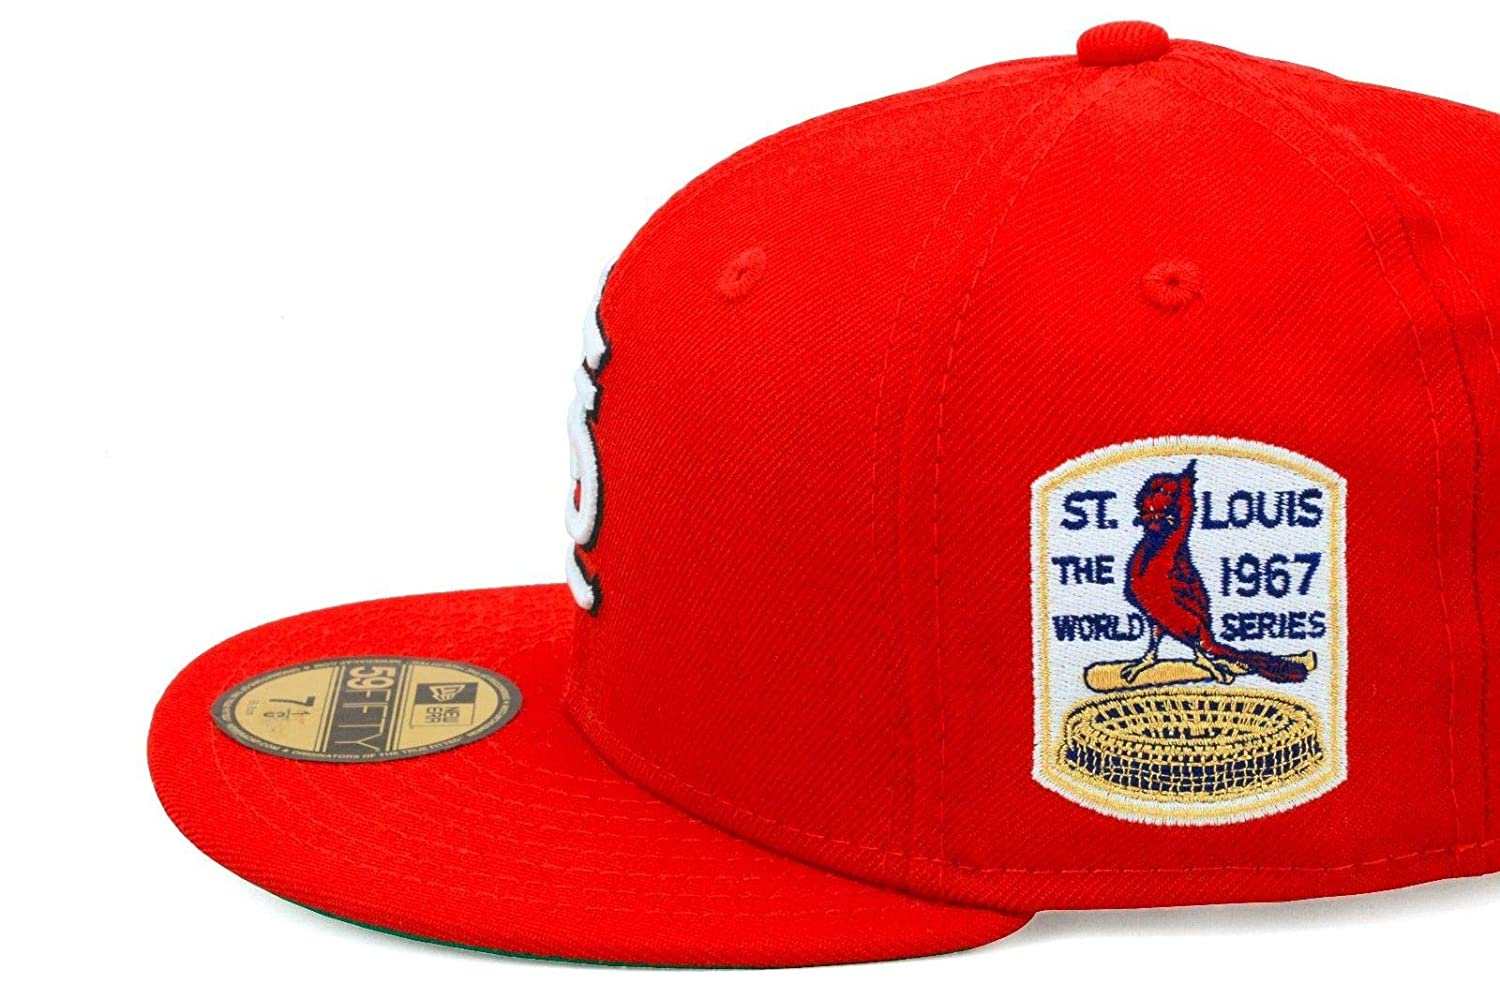 72c471d40 Amazon.com: New Era St. Louis Cardinals Fitted Hat Cap 1967 World Series  Patch: Sports & Outdoors